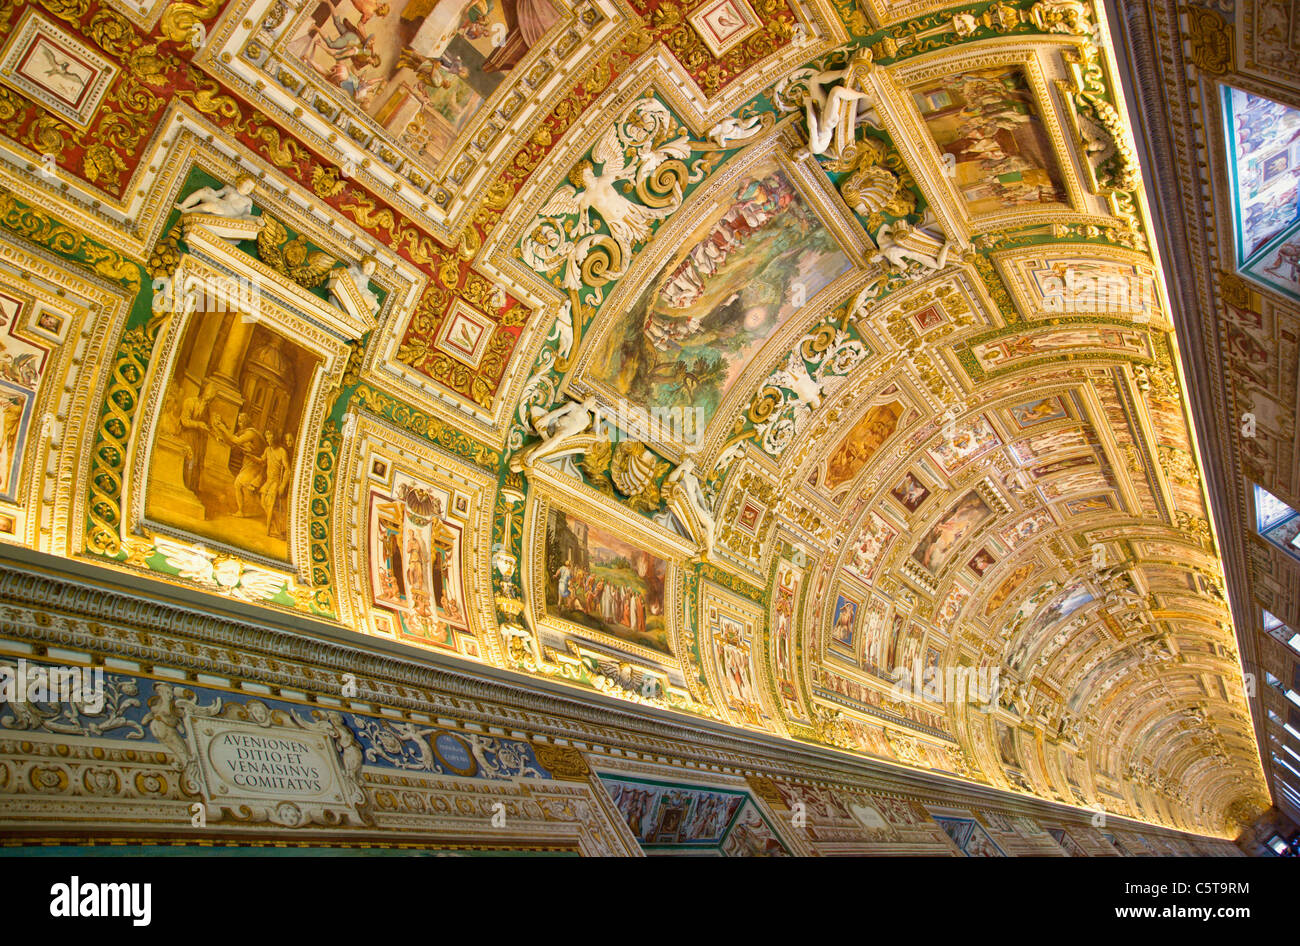 Italy Rome Vatican City Museum Gallery of maps ceiling